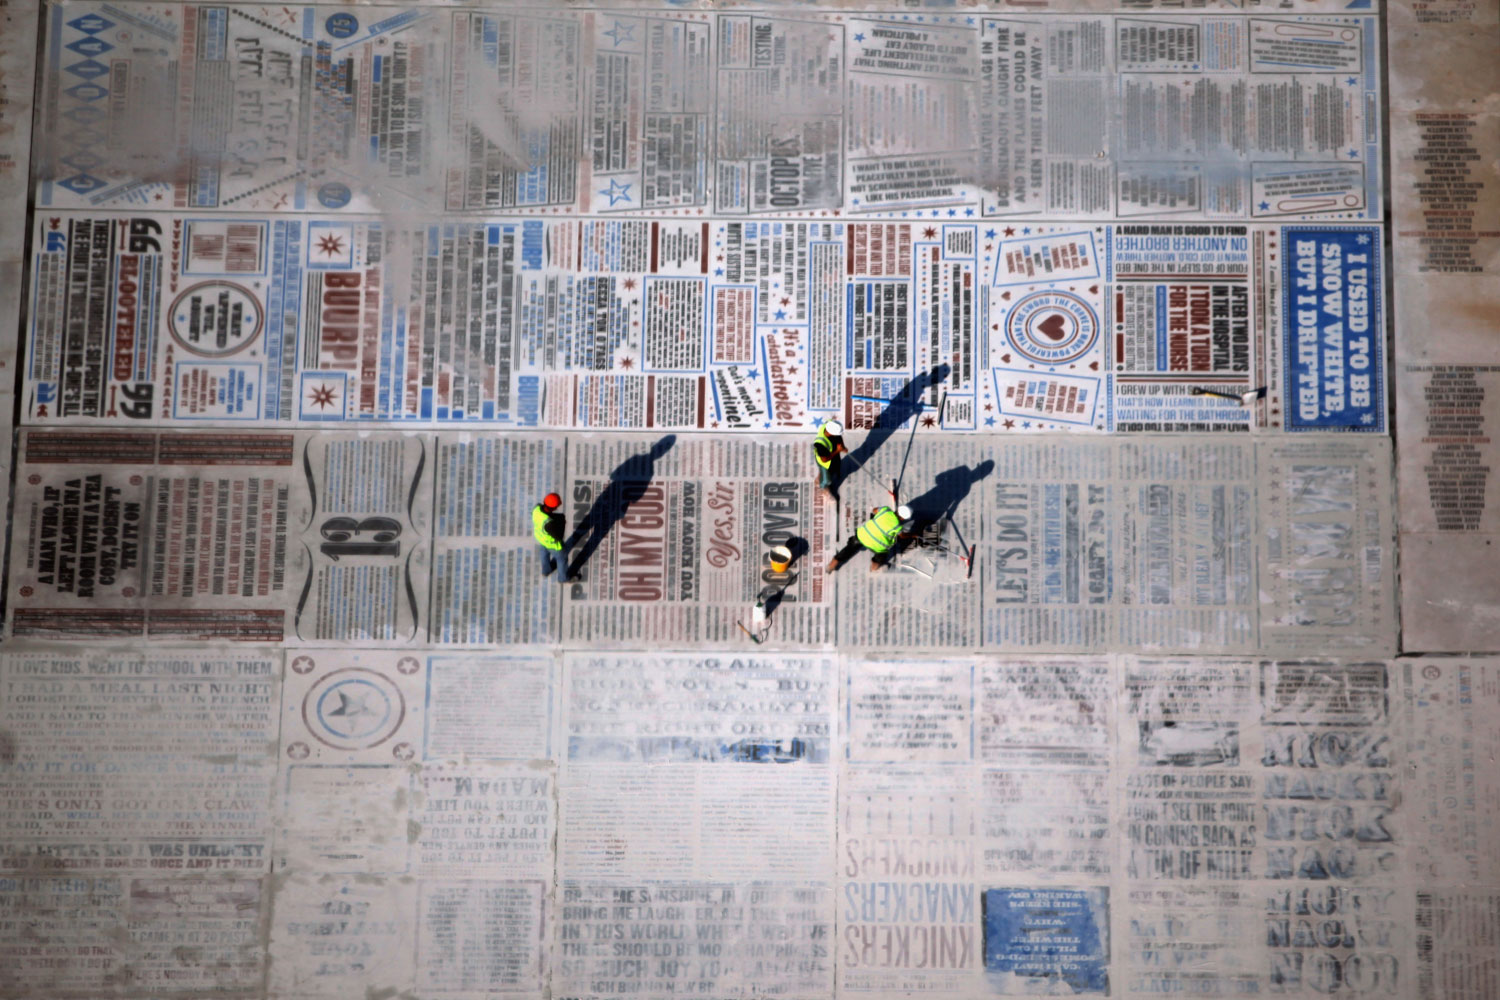 September 1, 2011. Workmen put the finishing touches to a giant art work on Blackpool promenade viewed fron the top of the refurbished Blackpool Tower in Blackpool, England.